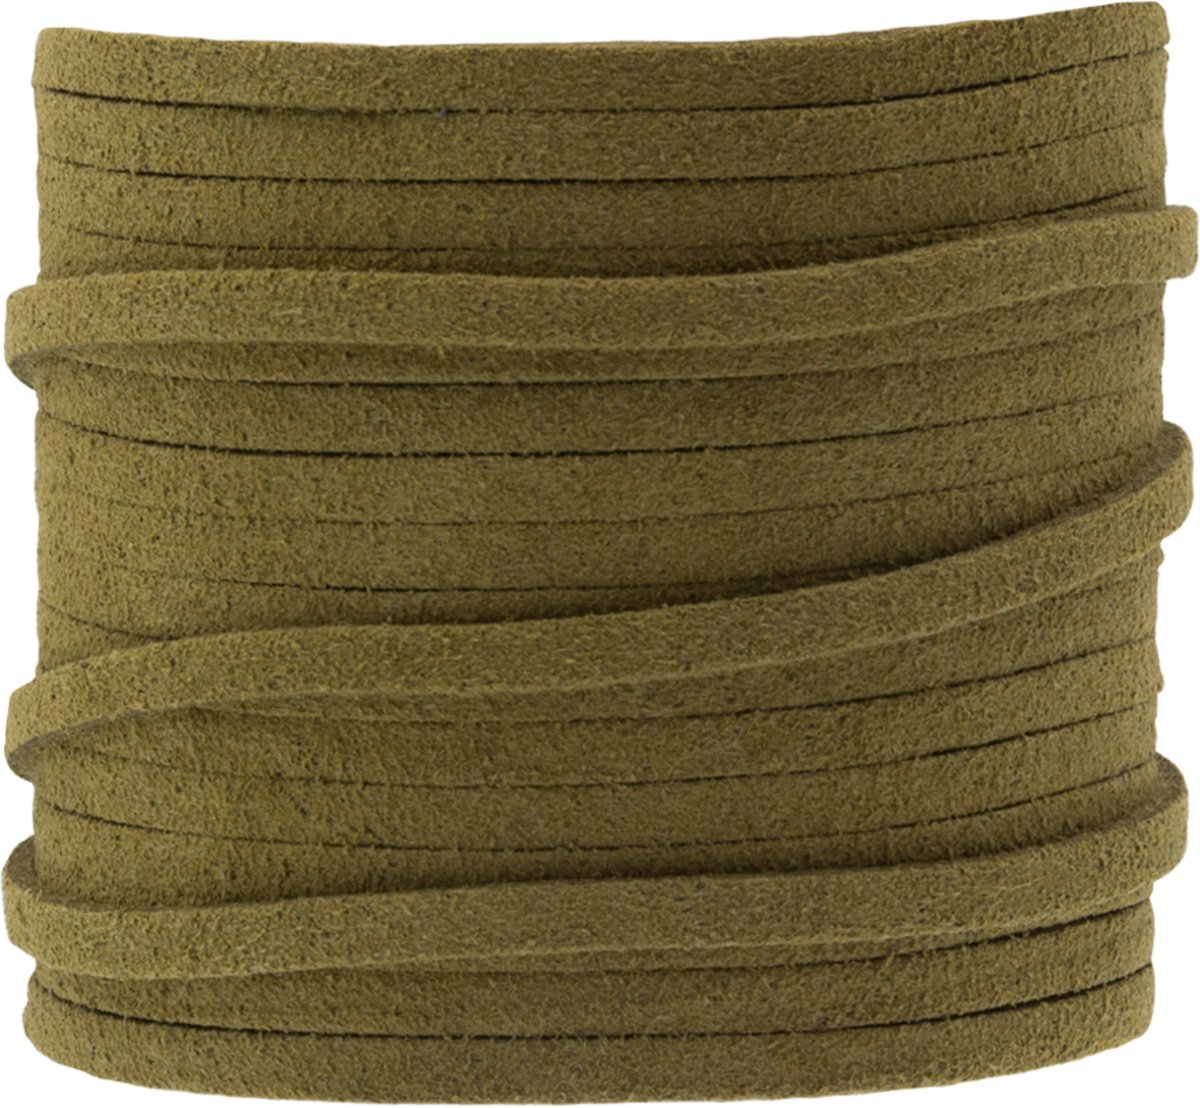 Faux Suede Veter (3 mm) Moss Green (5 Meter)